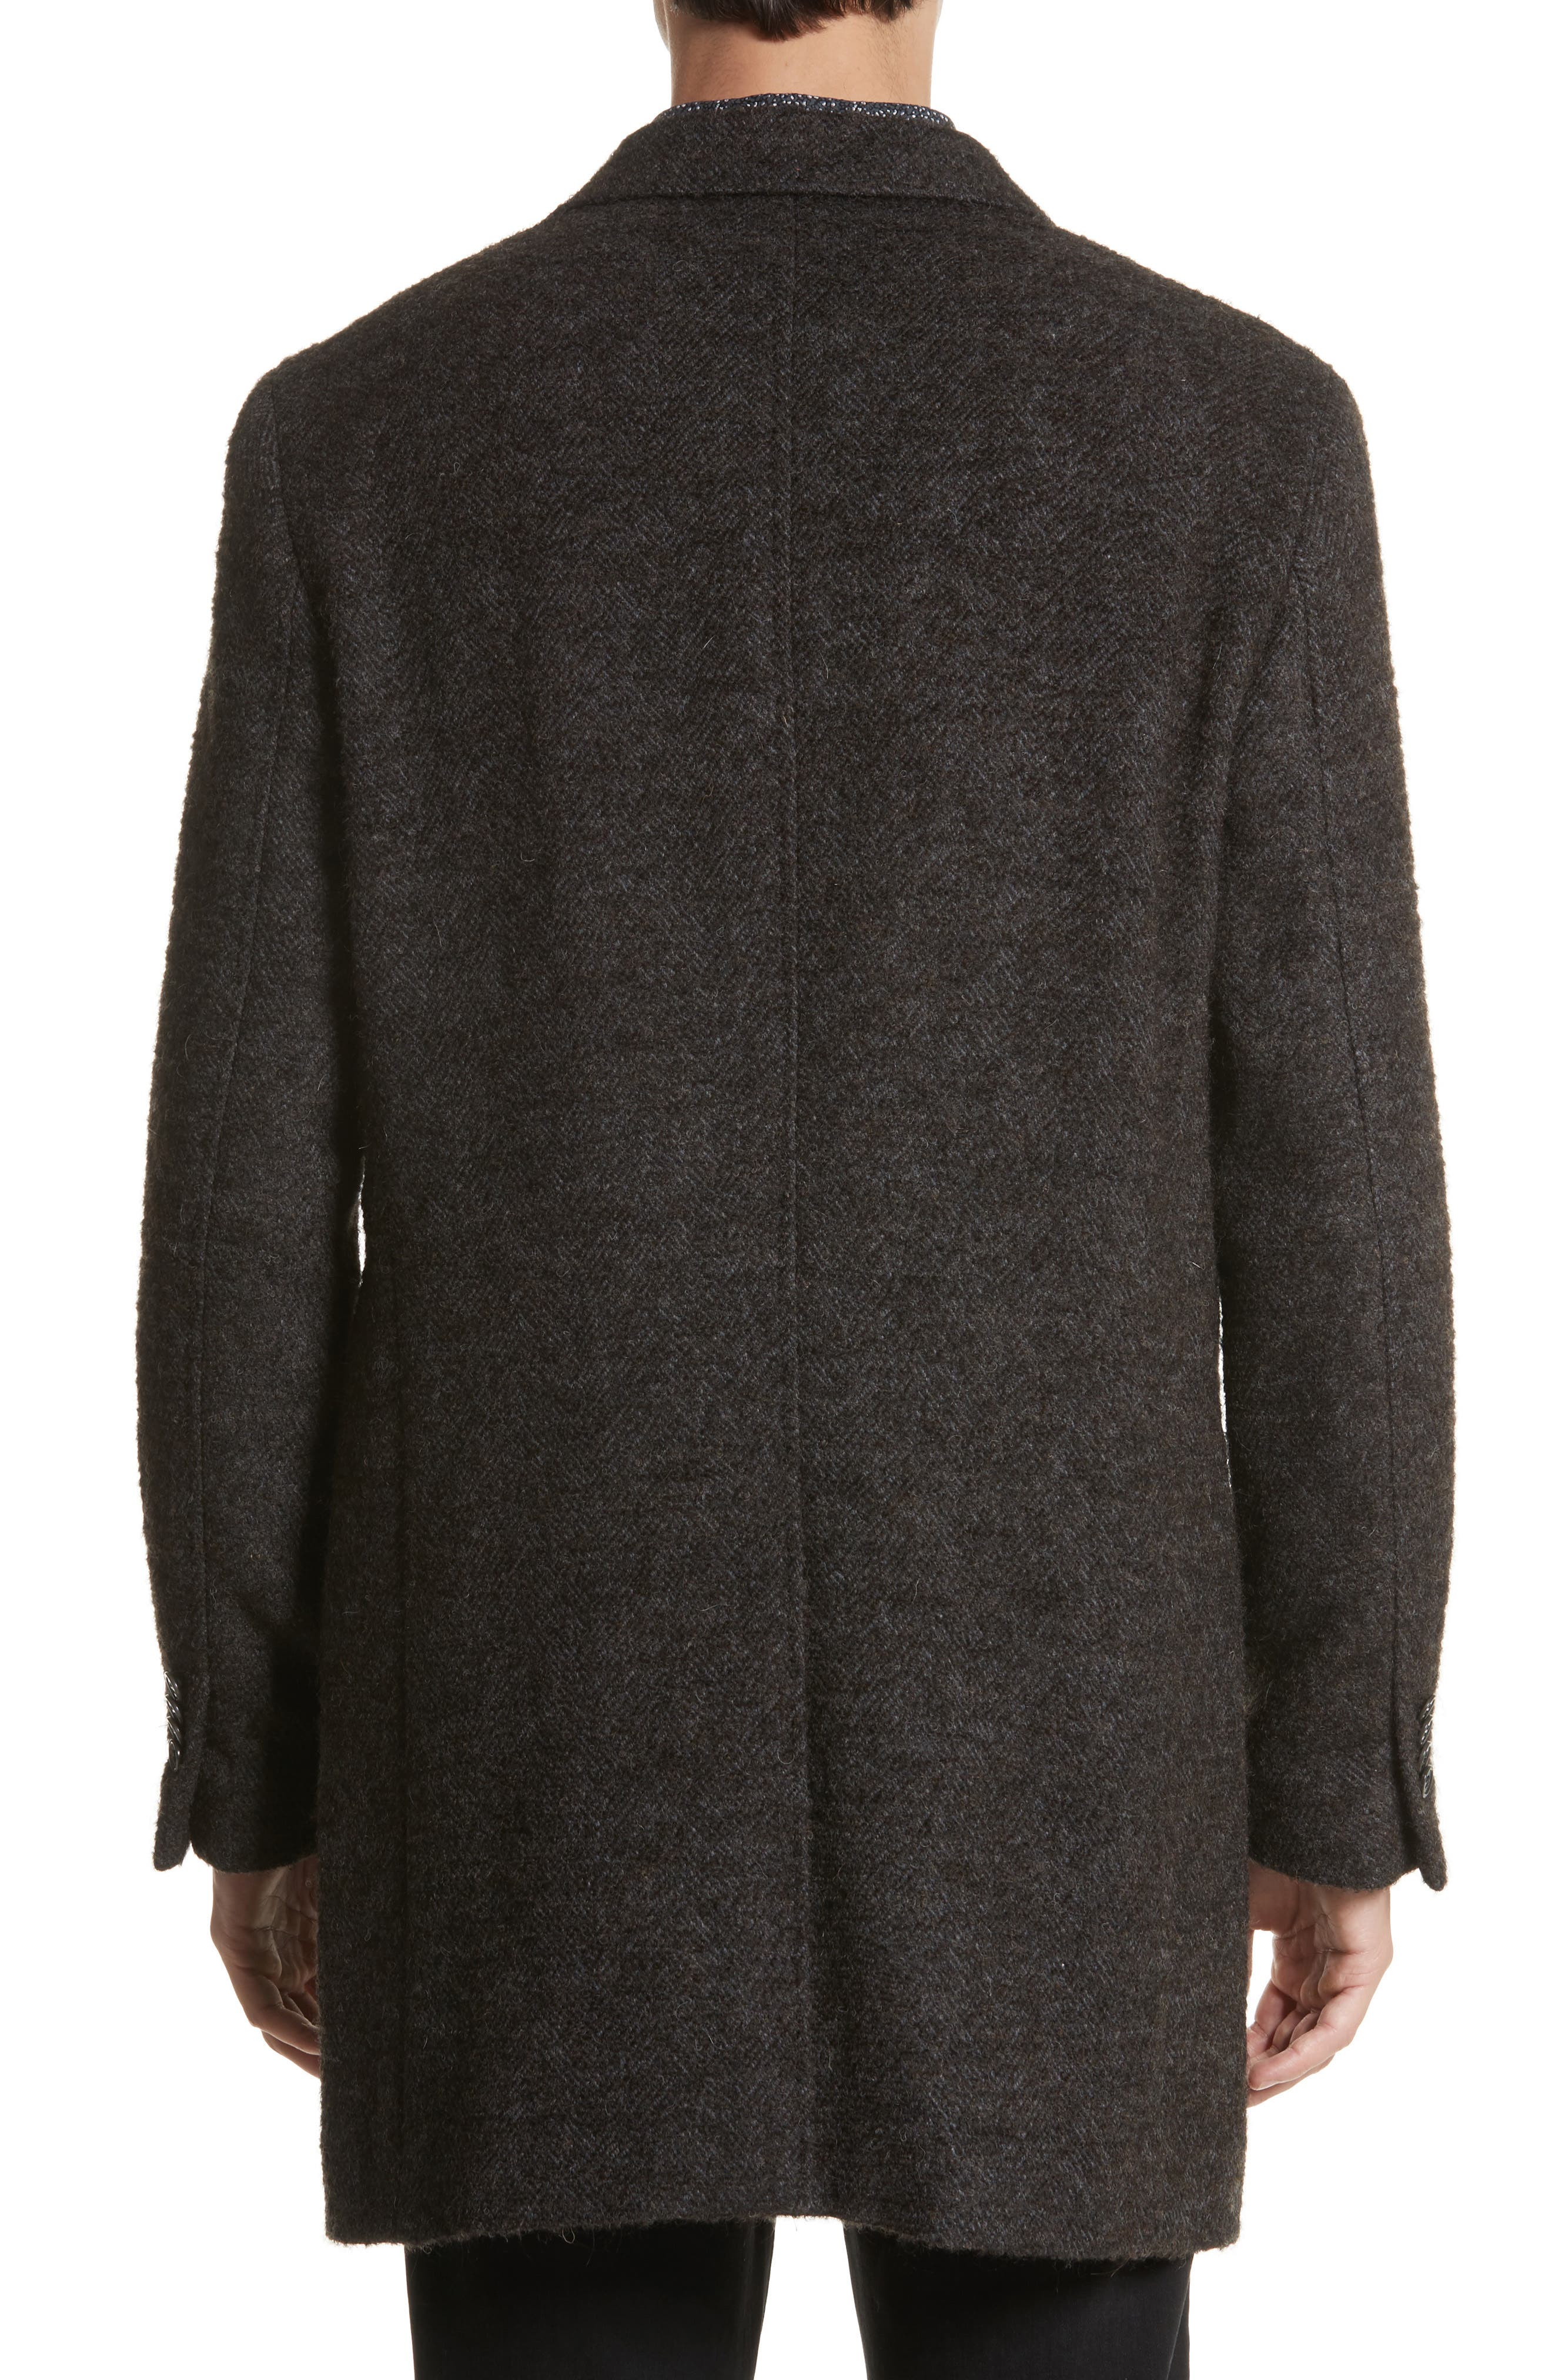 Walsh Wool Blend Topcoat,                             Alternate thumbnail 2, color,                             Brown/ White